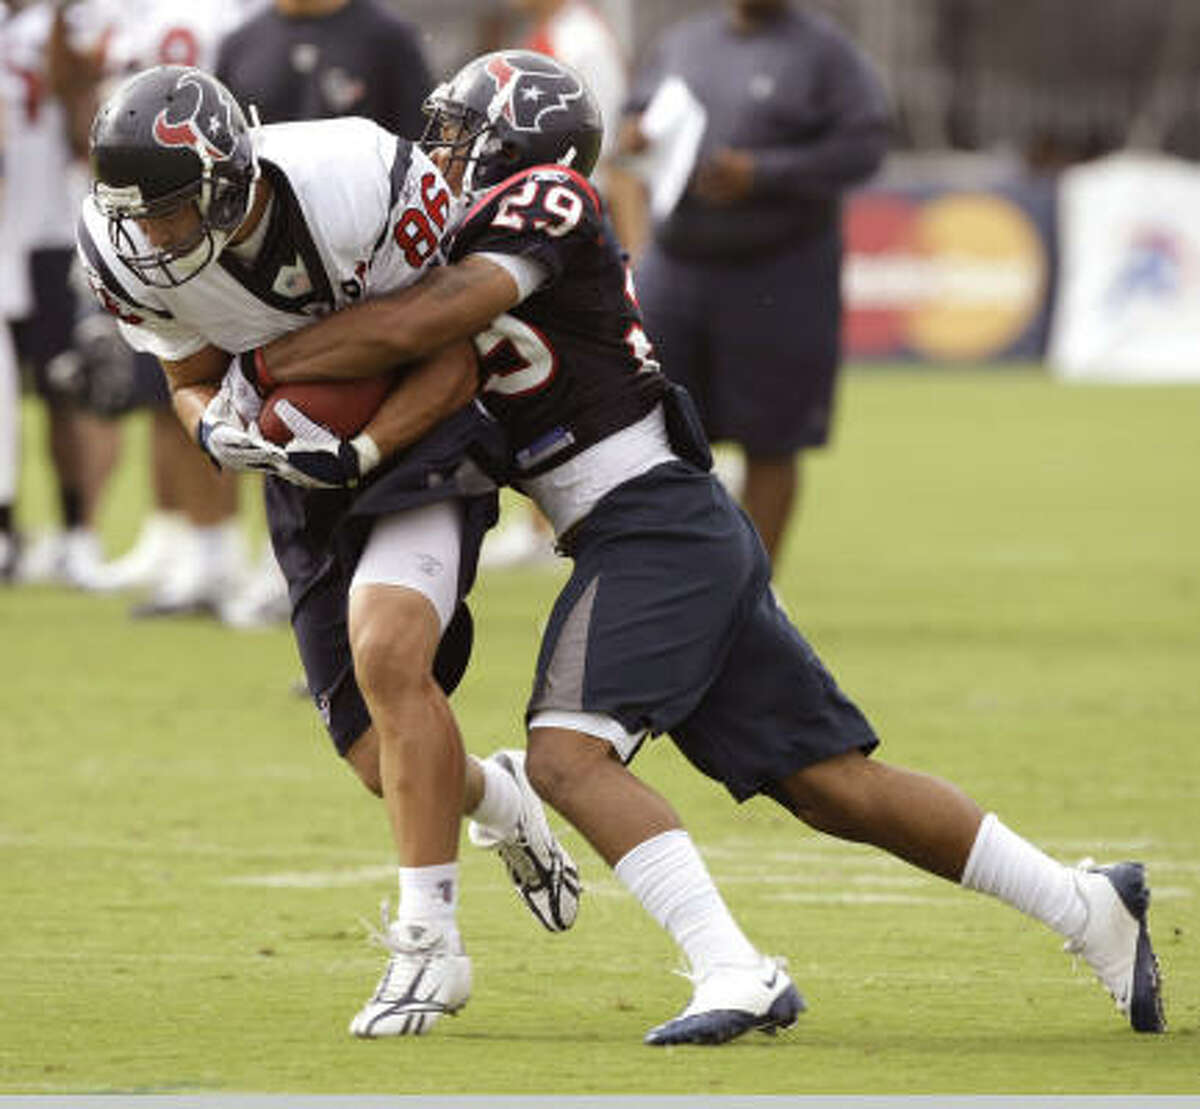 Texans tight end James Casey, a fifth-round selection from Rice, is hit by rookie cornerback Glover Quin.